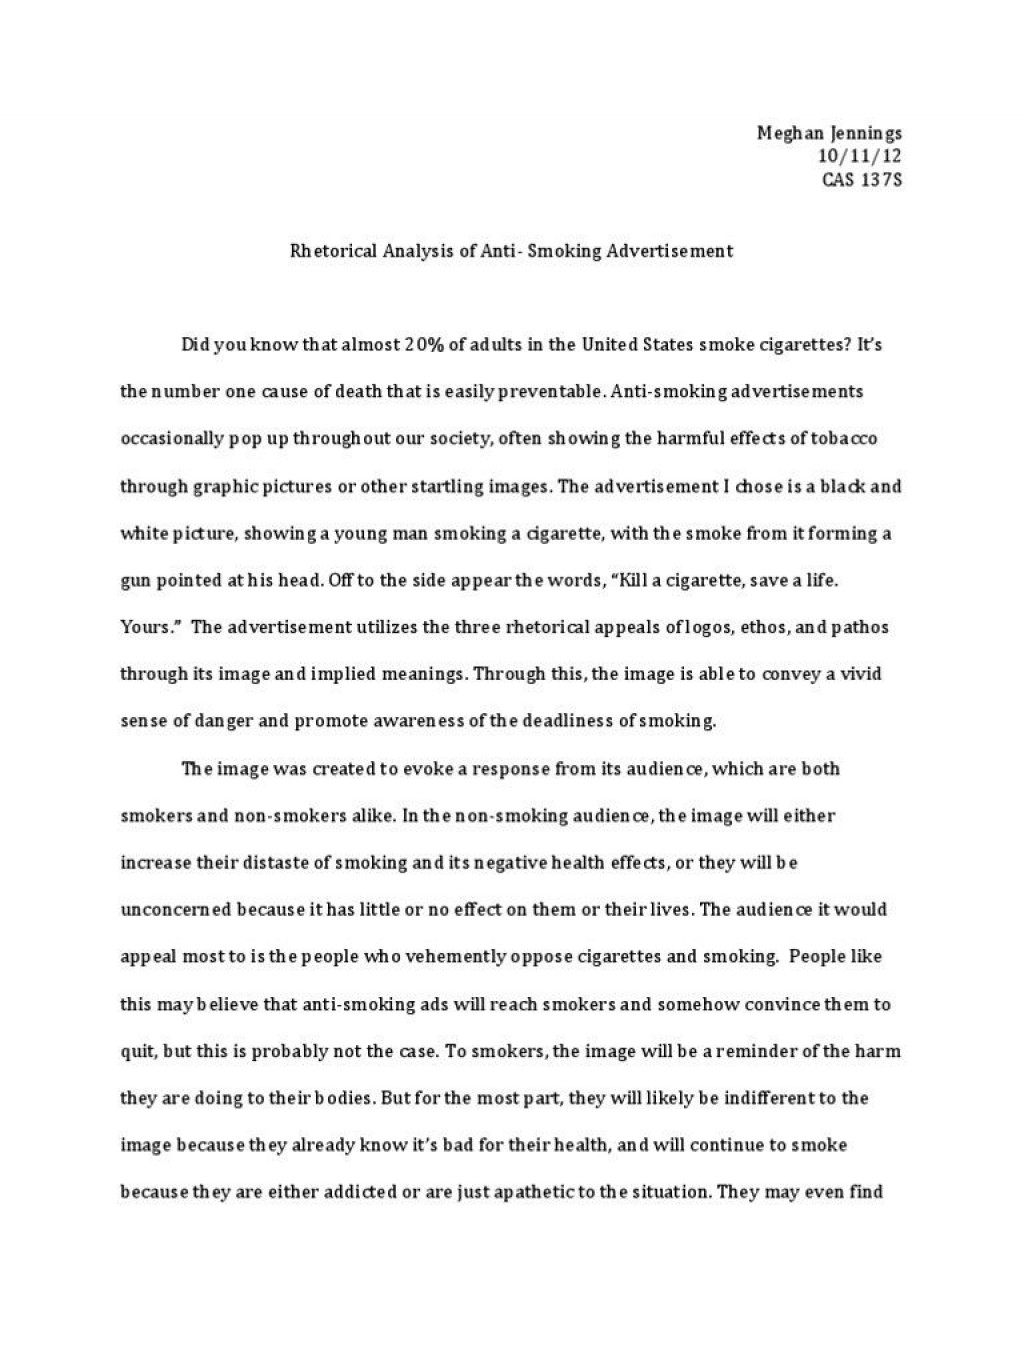 006 Rhetorical Essays Visual Analysis Essay Example Direction Evaluation Also Ethical Issue Of Striking Topics Strategies Examples College Question Large